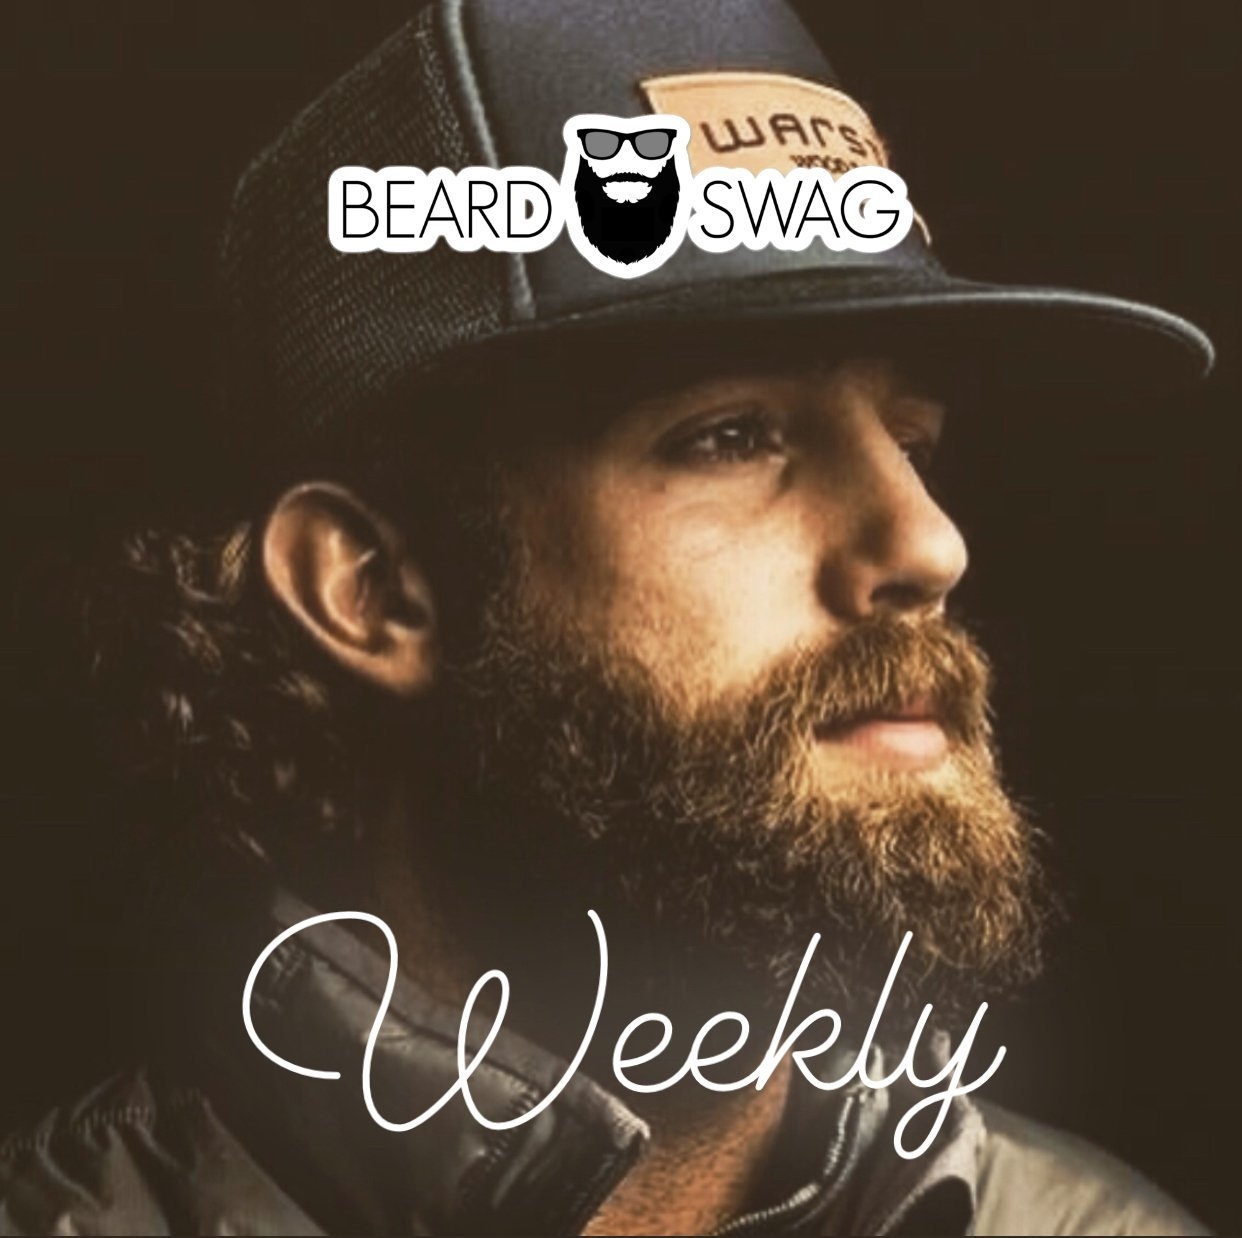 Beard Swag Weekly - Together | Beard Swag